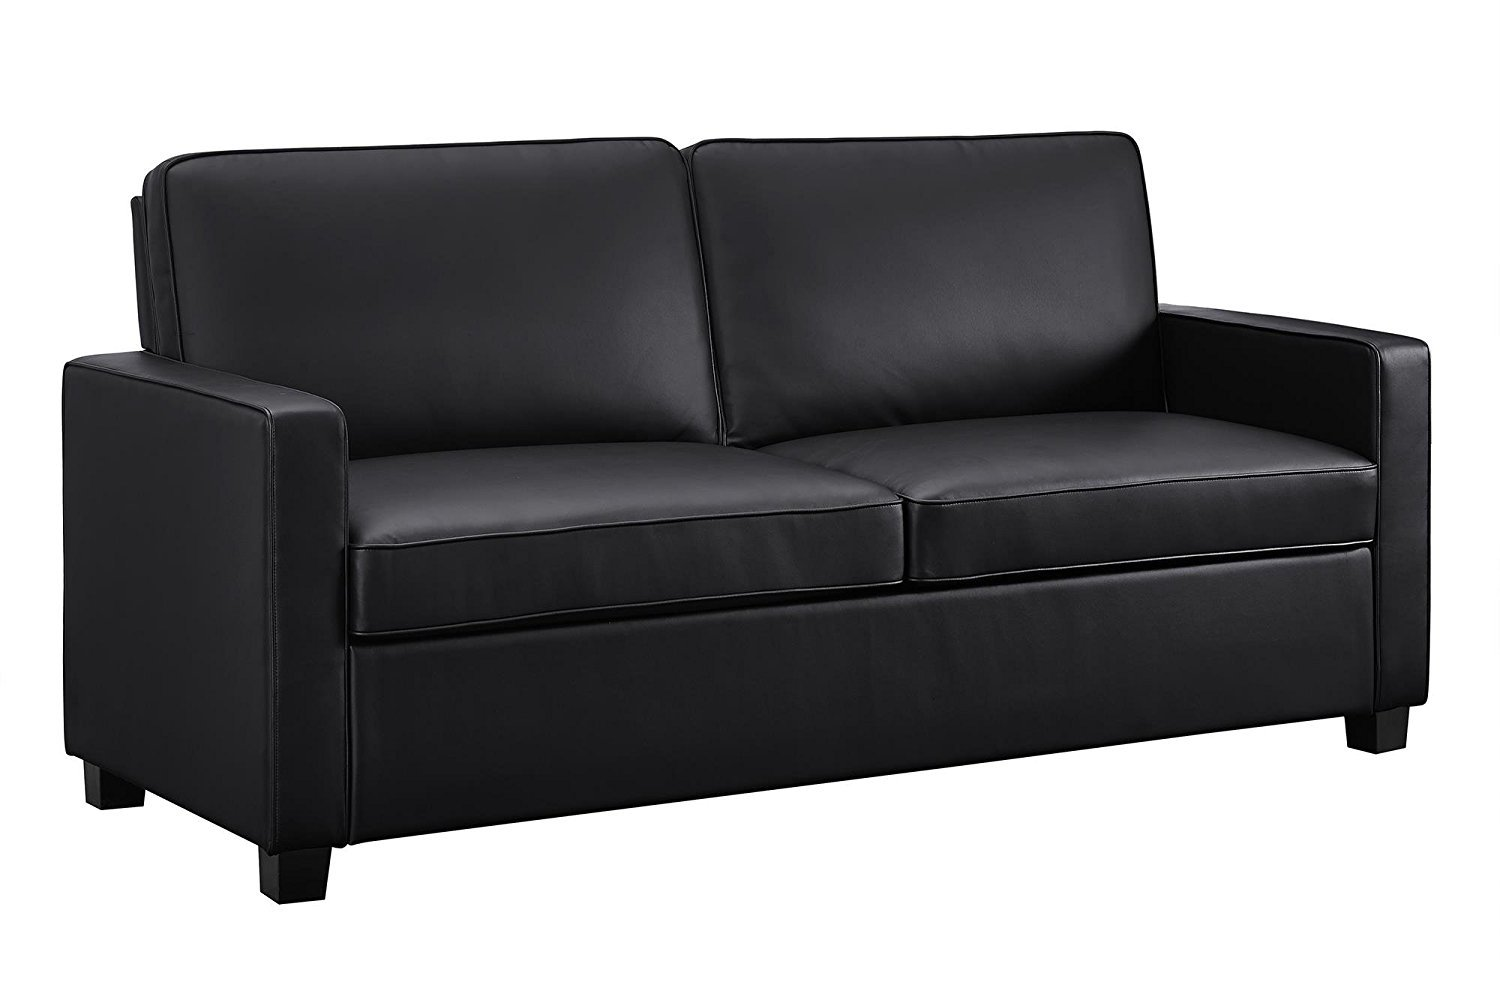 Modern Faux Leather Sofa Bed